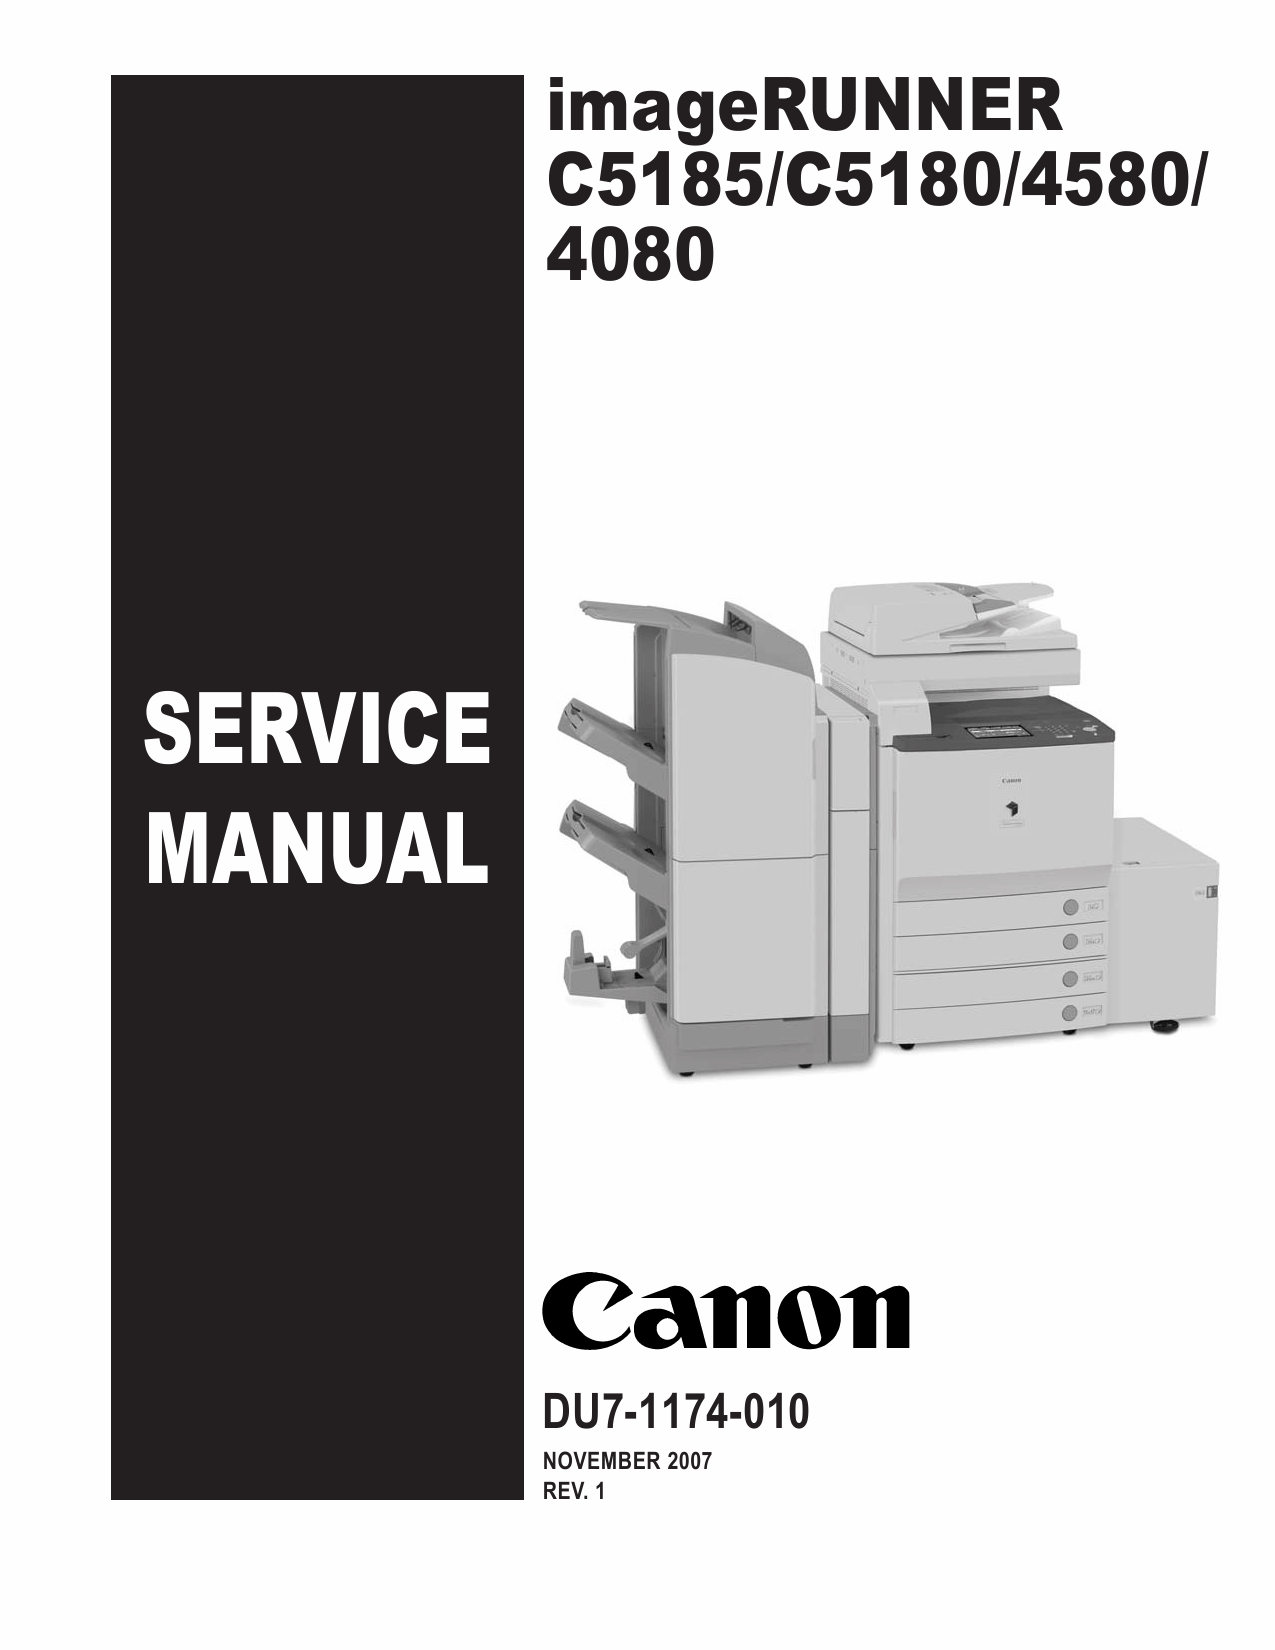 Canon imageRUNNER iR-C5185 C5180 C4580 C4080 Parts and Service Manual-1